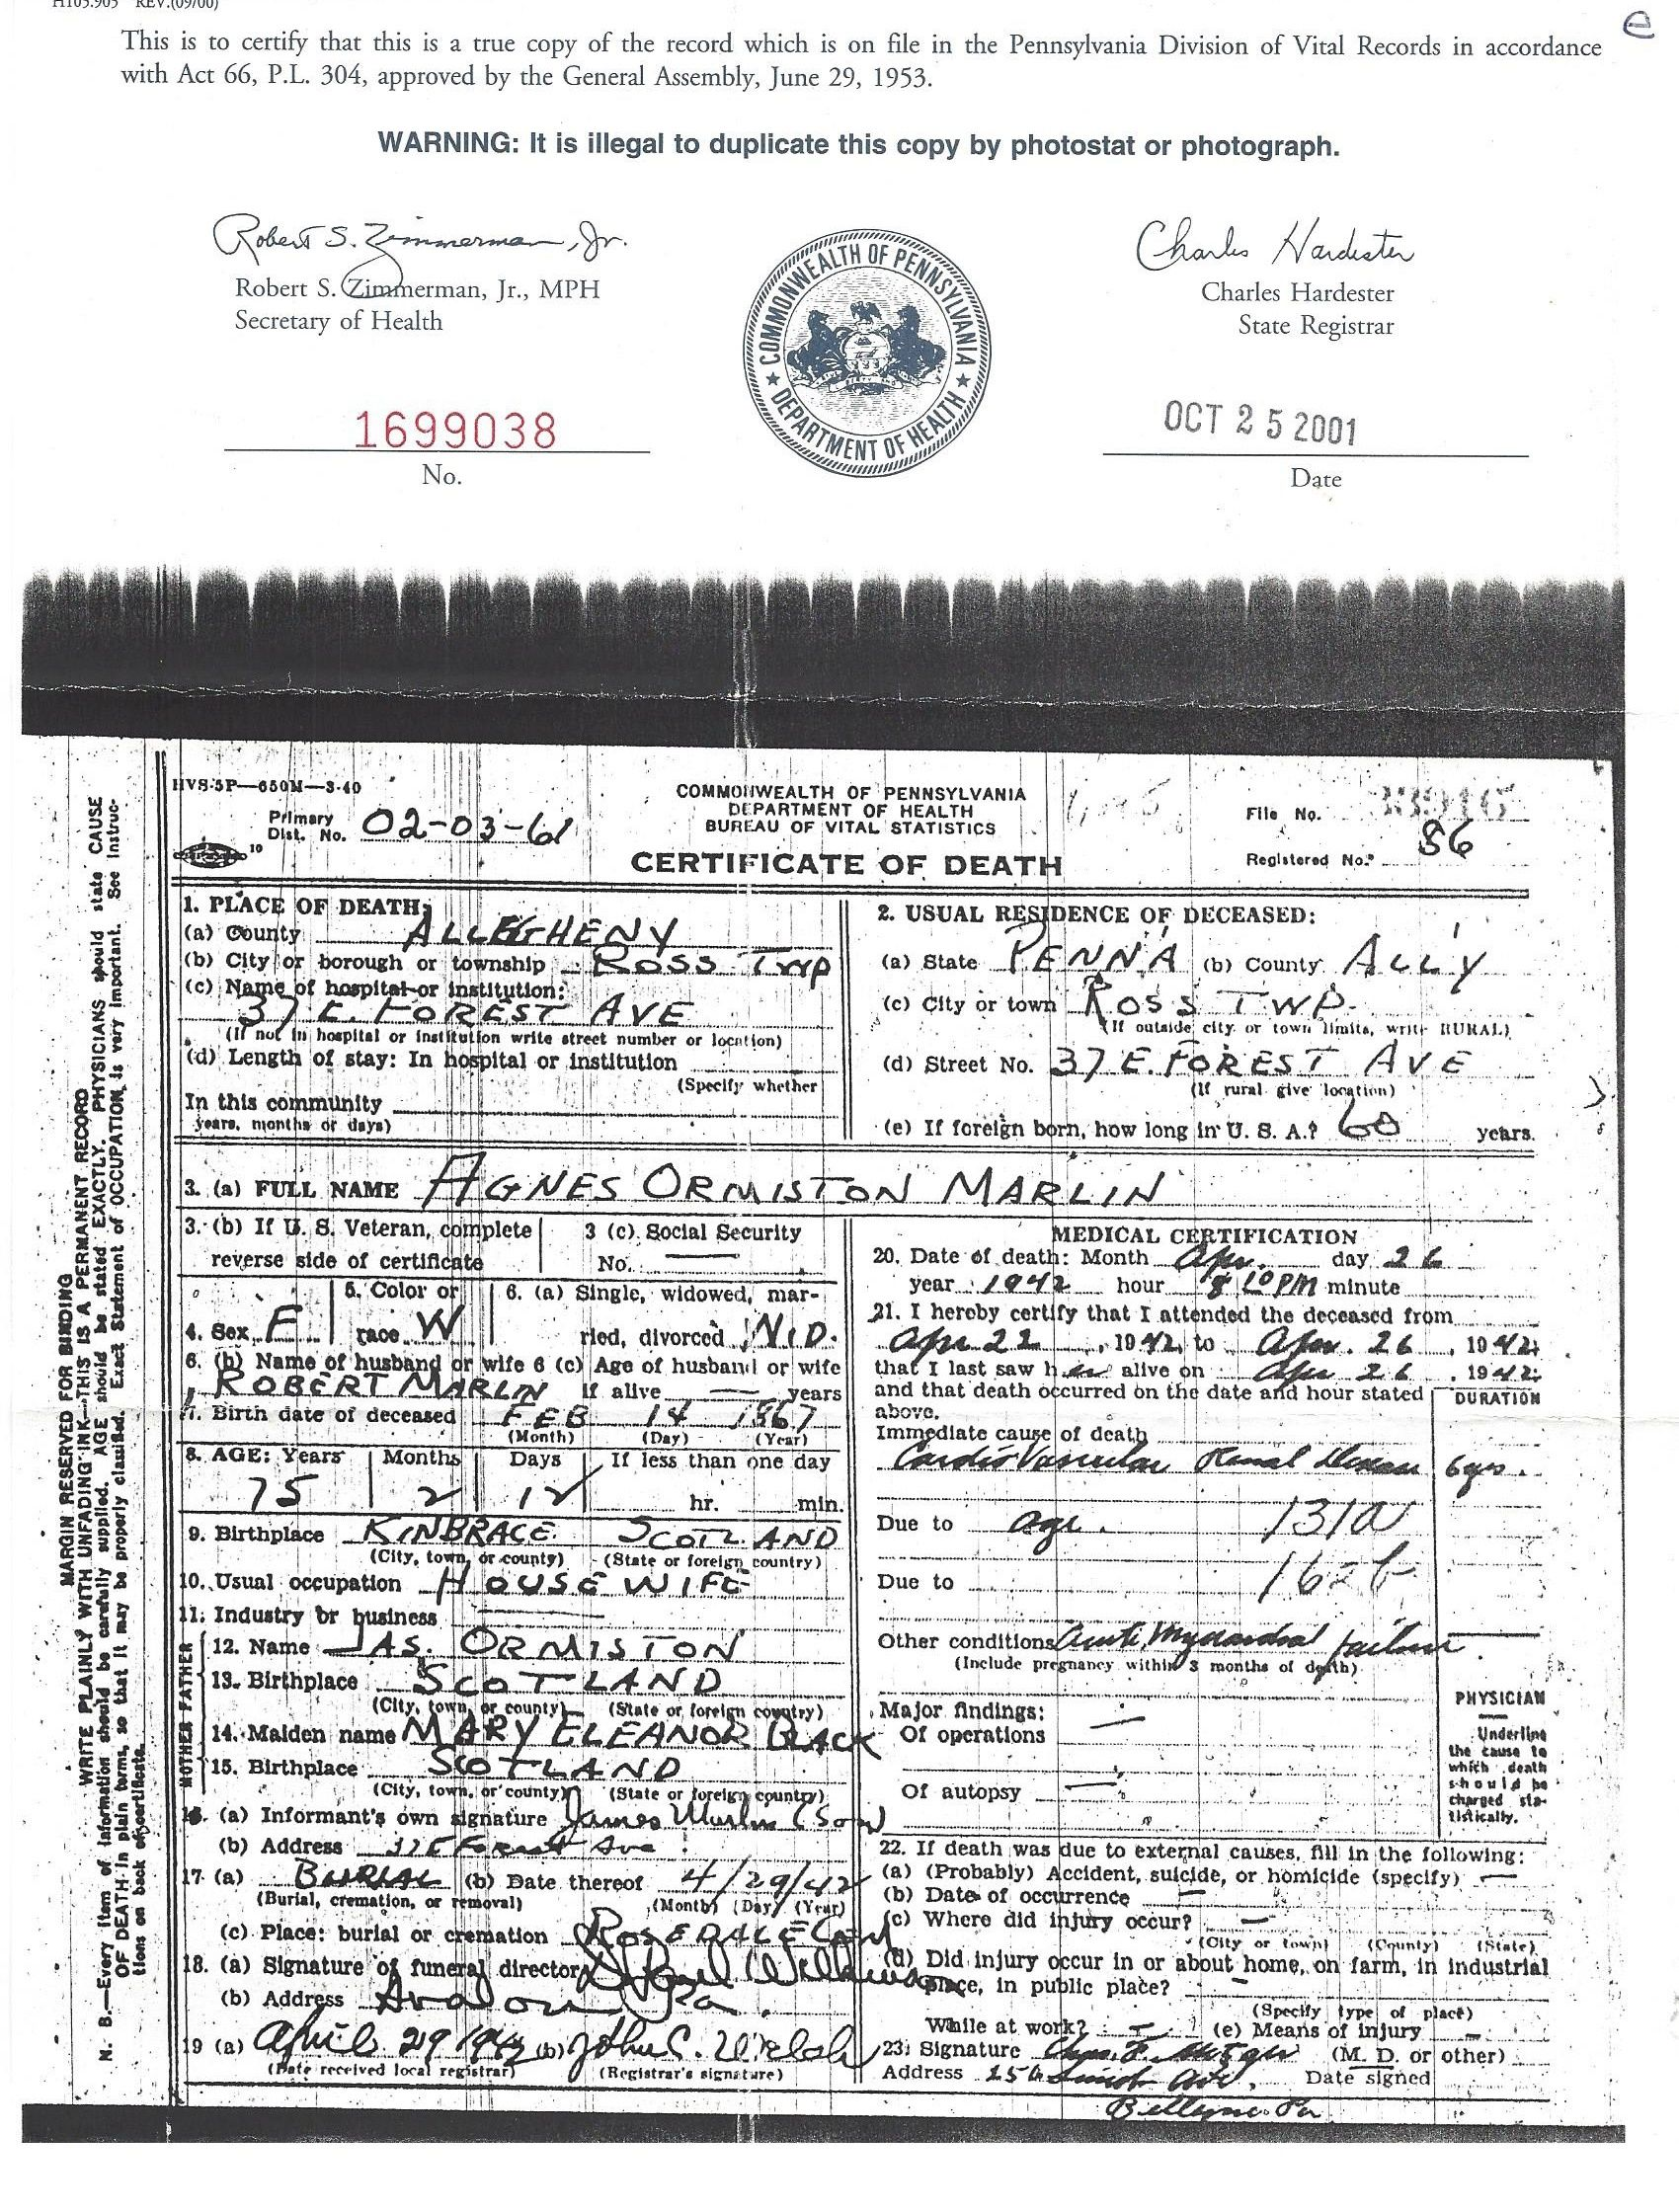 Robert marlin death certificate indian county pennsylvania 1909 robert marlin death certificate indian county pennsylvania 1909 marlin genealogy pinterest death certificate 1betcityfo Choice Image